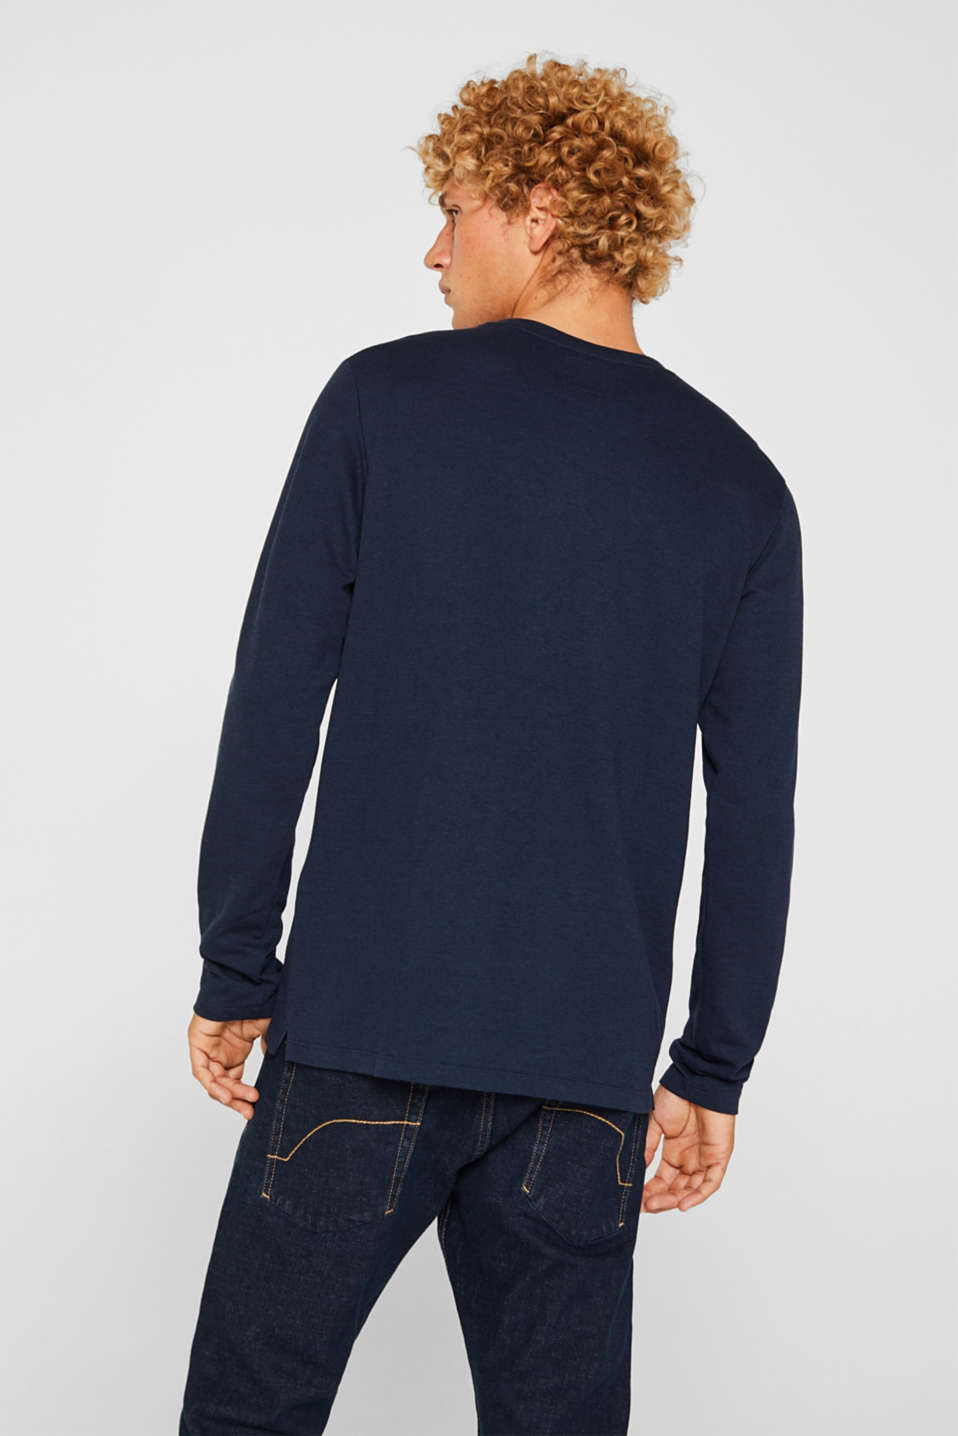 Long sleeve top made of textured jersey, NAVY, detail image number 3